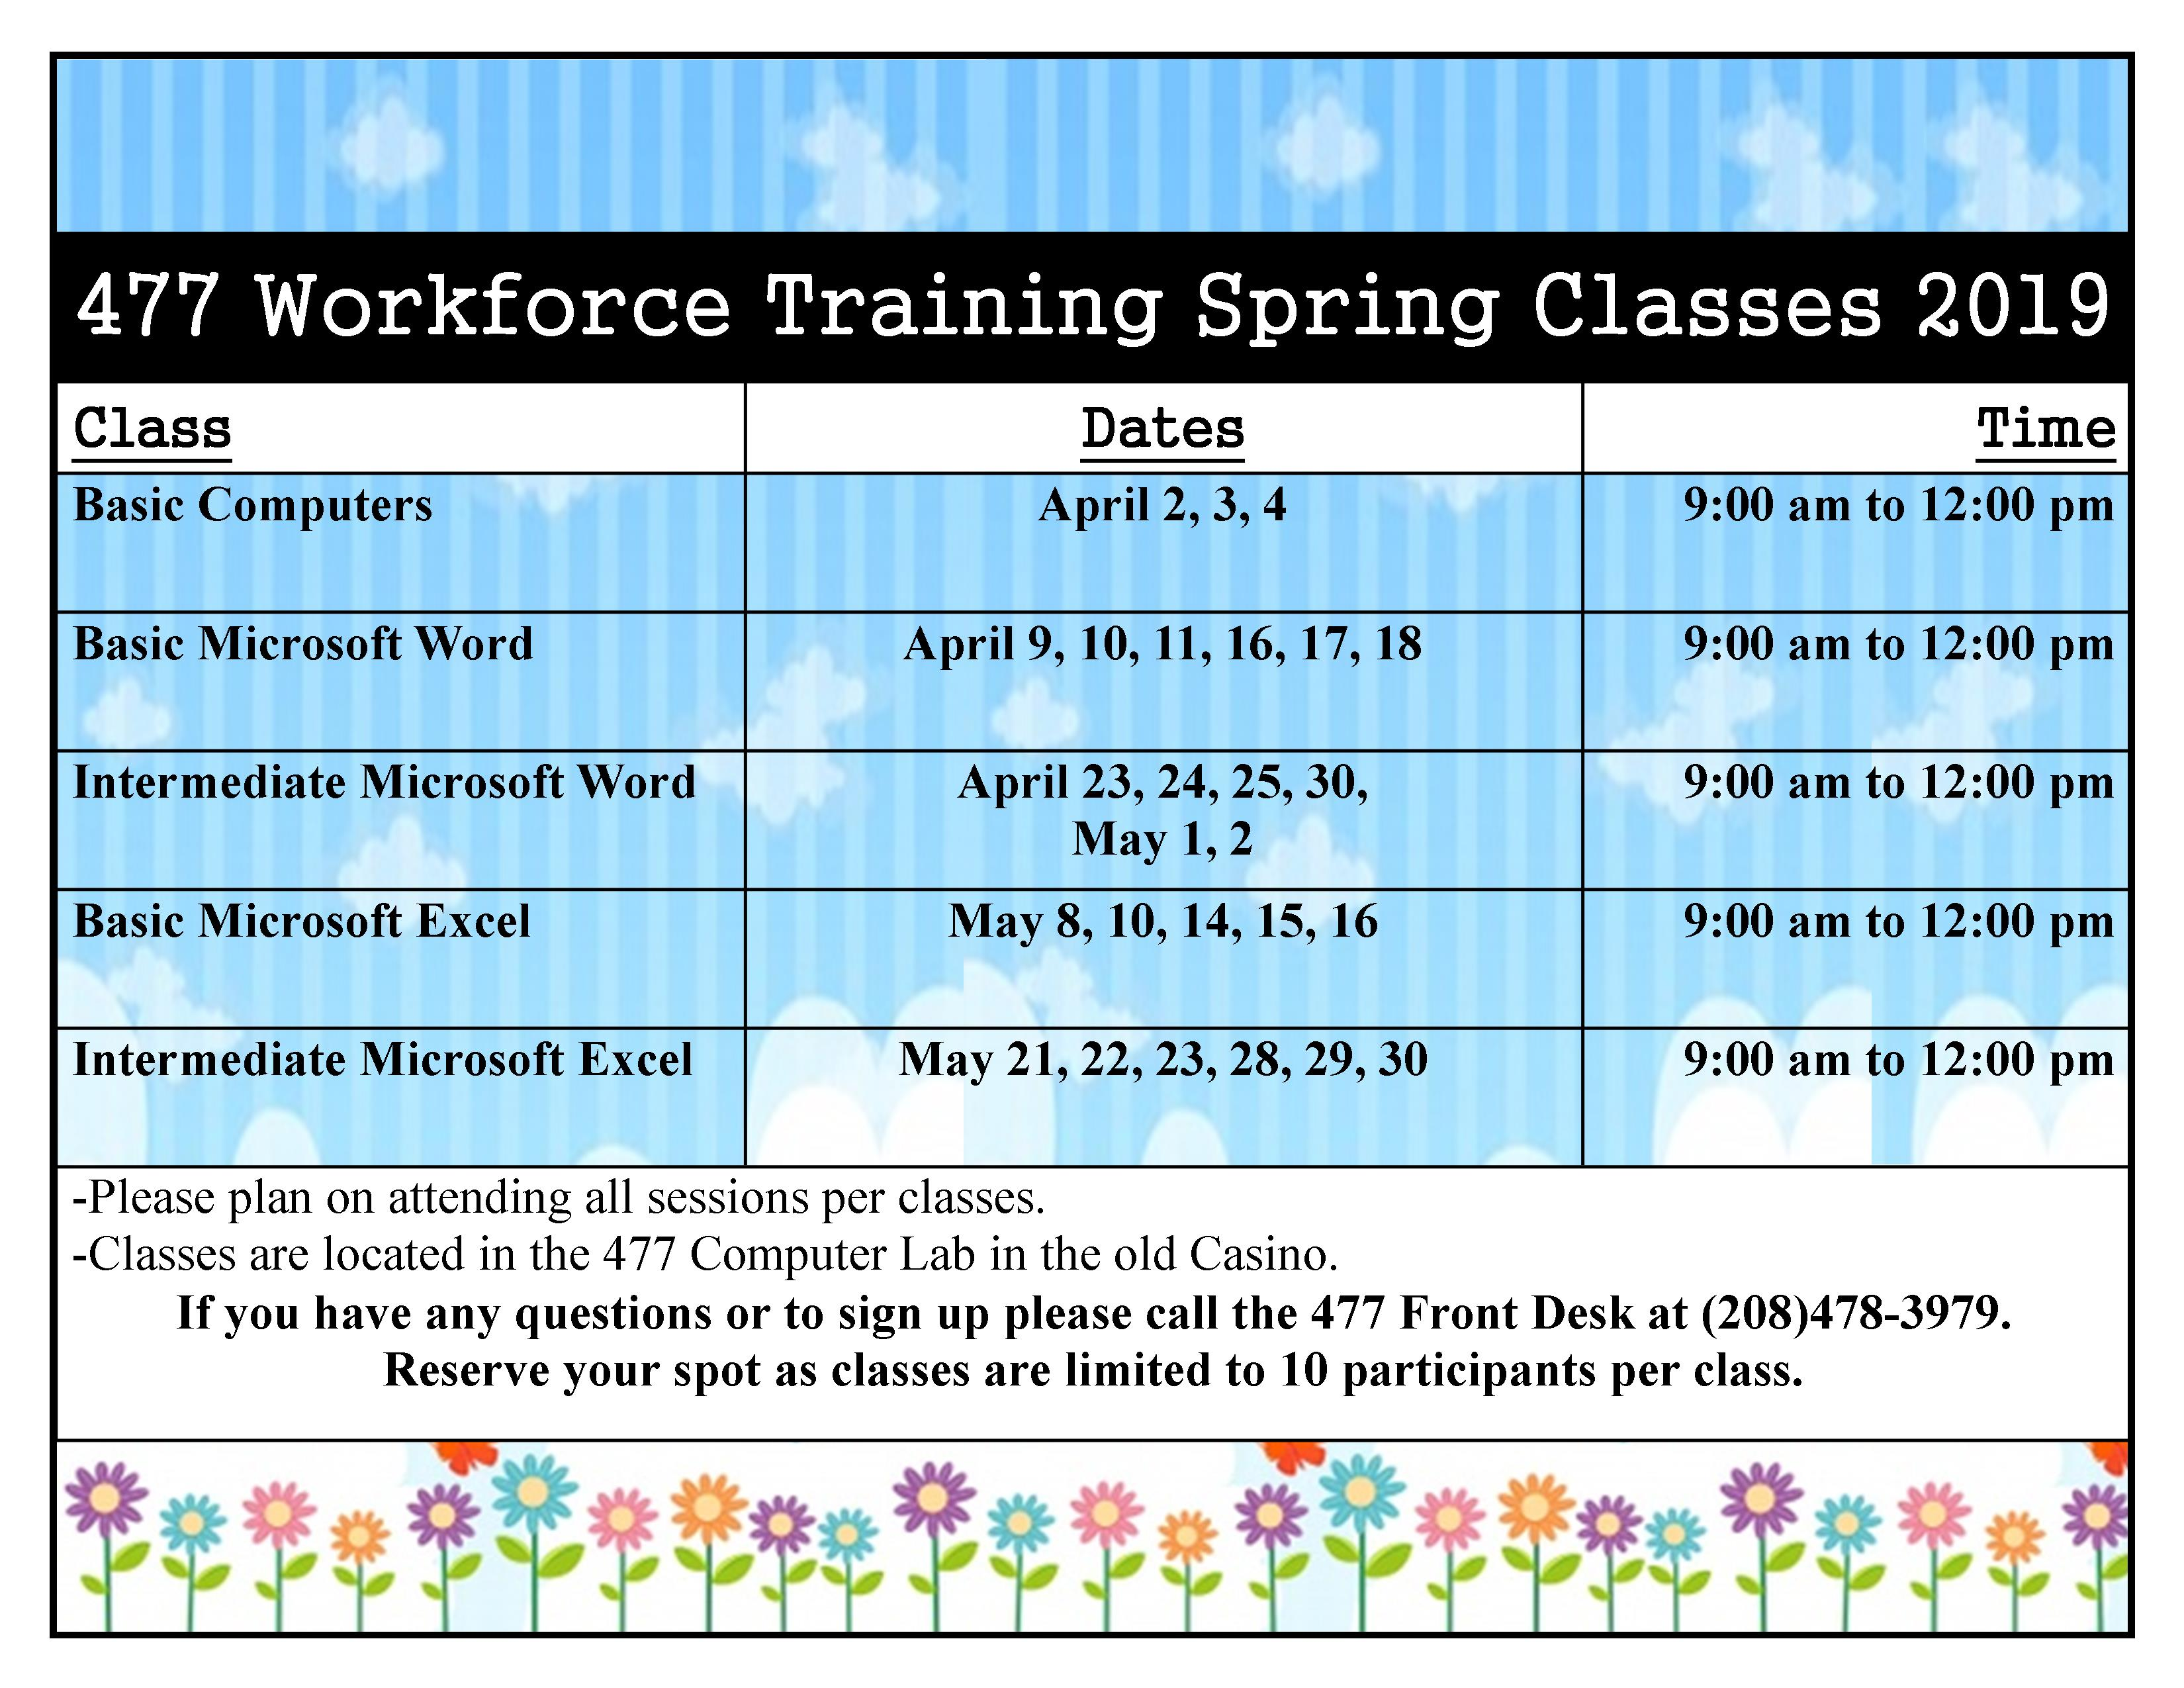 477 Spring Workforce Training Classes: Basic Microsoft Word